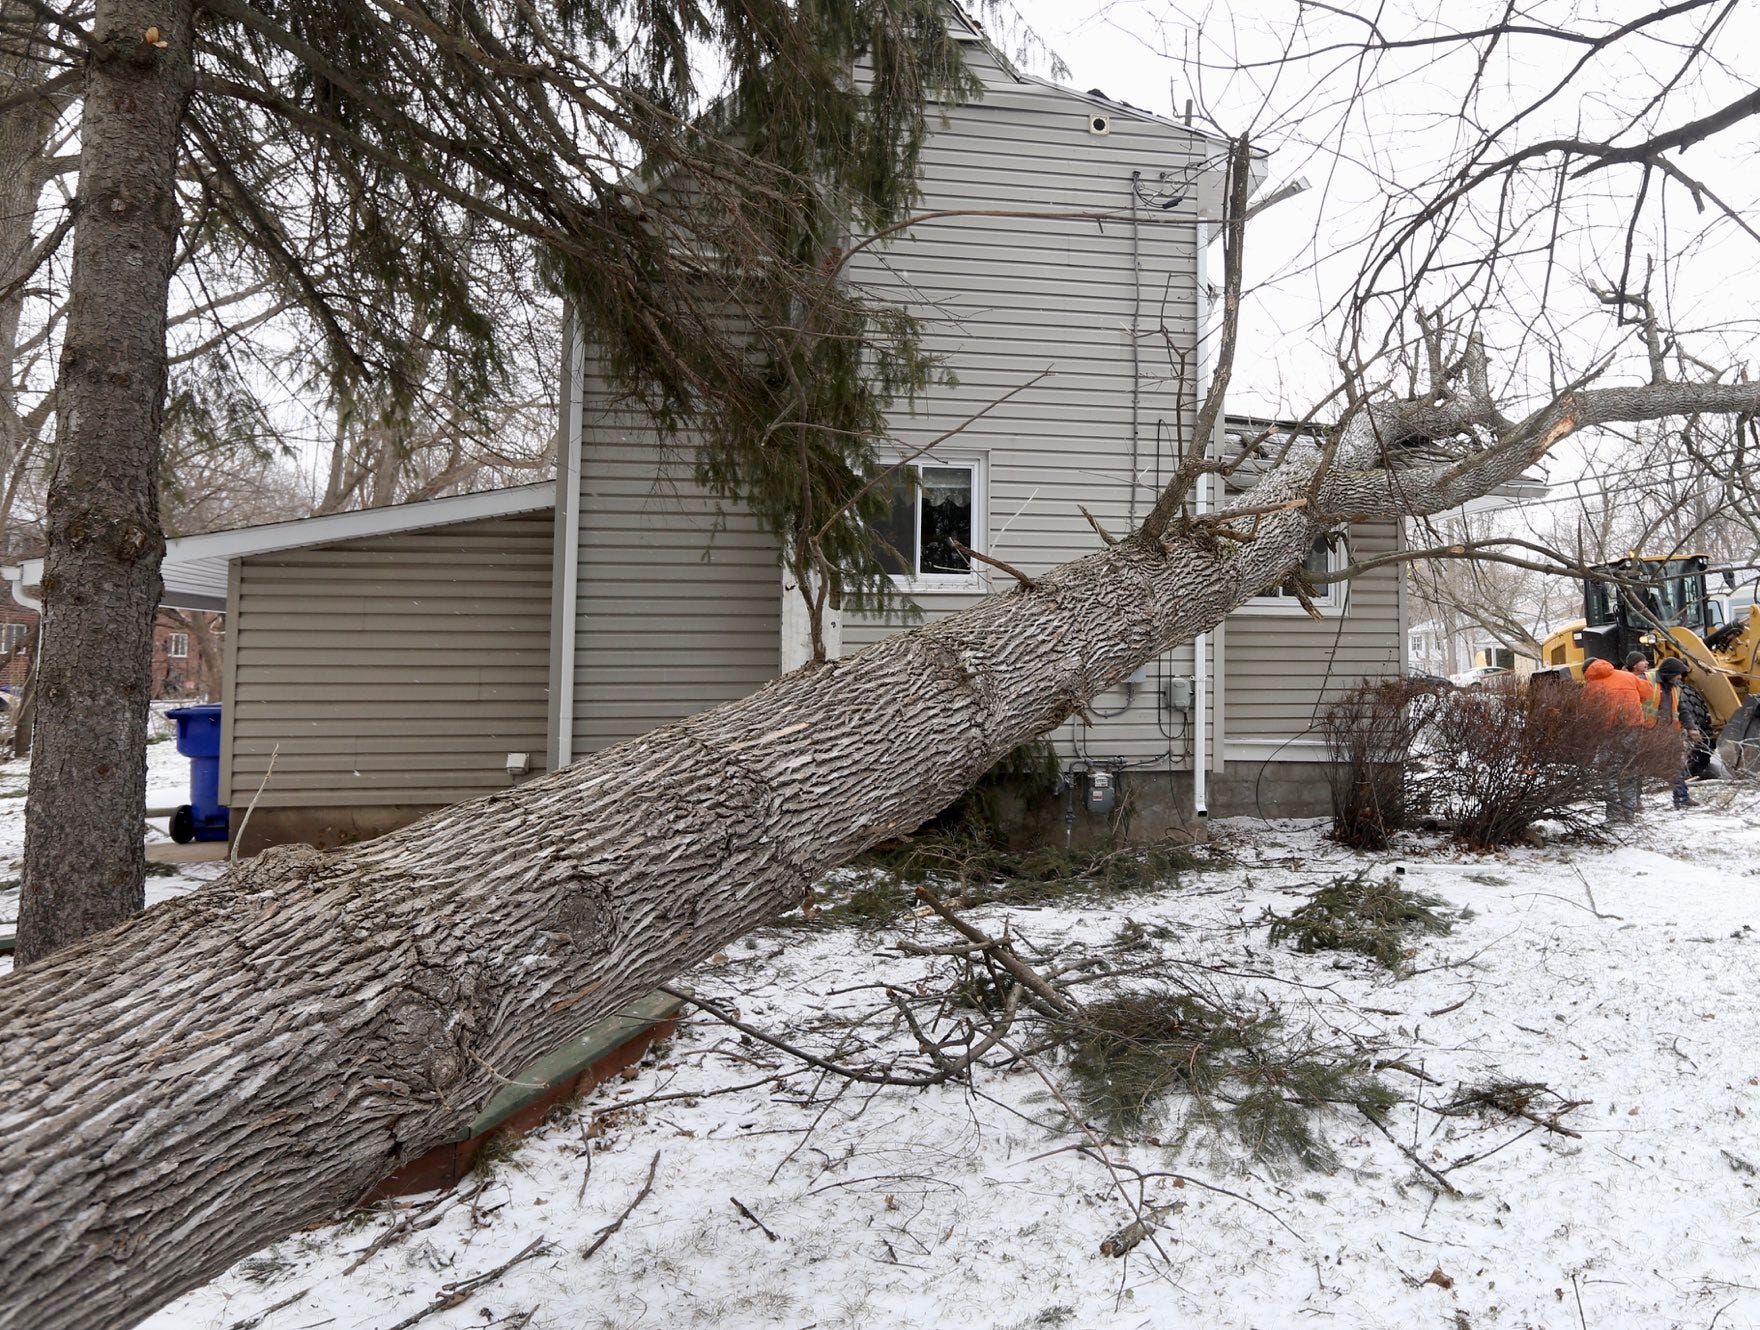 Workers clean up after this tree fell in Brockport.